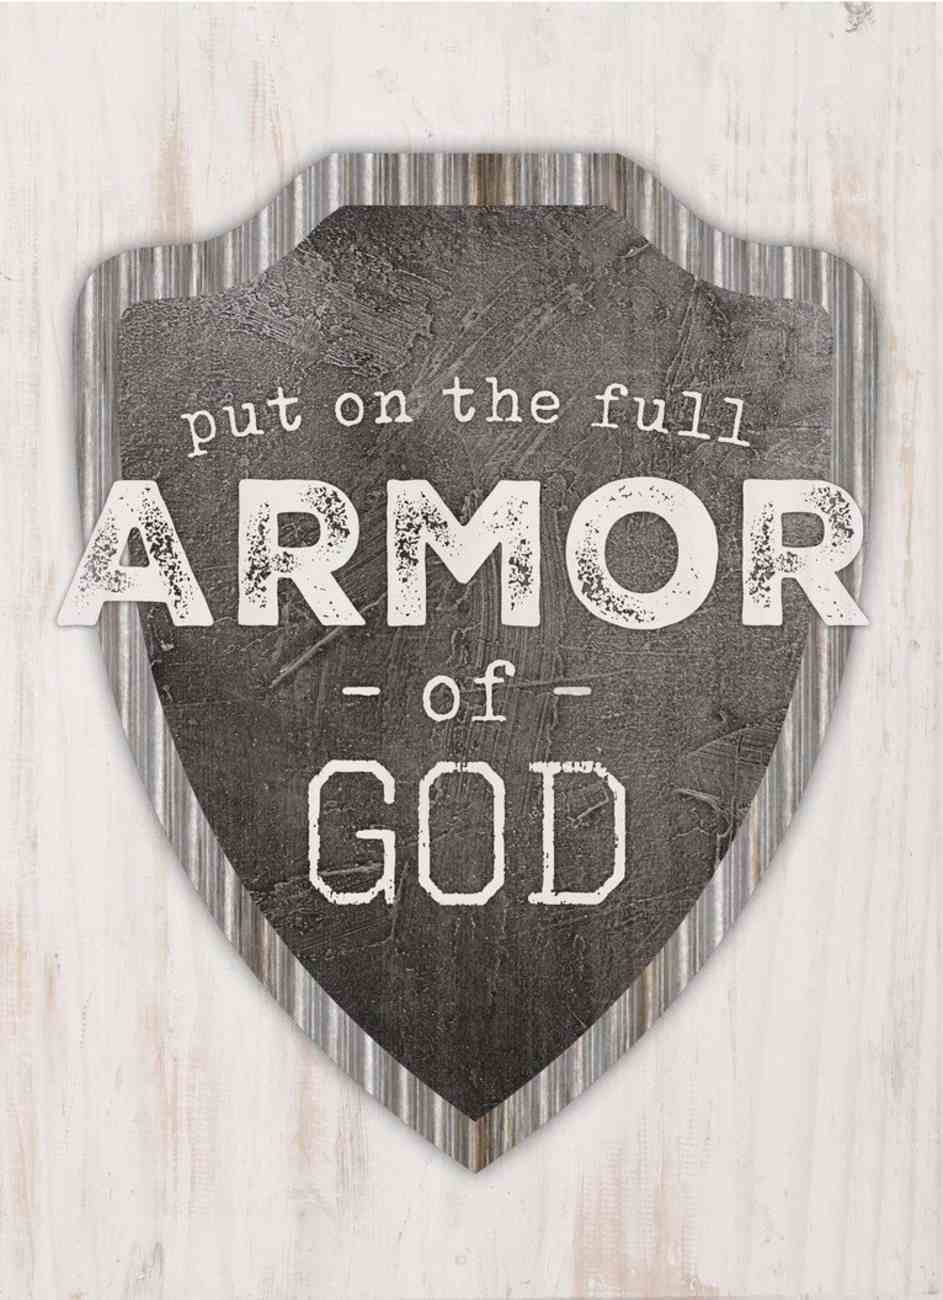 Tabletop Decor: Put on the Full Armor of God, Shield Plaque